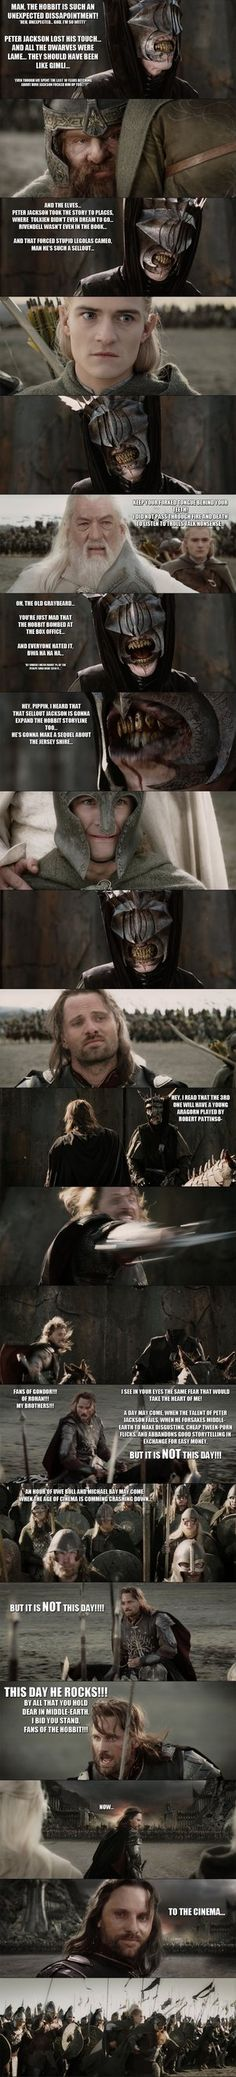 Thank you Aragorn. Tell it like it is... :)